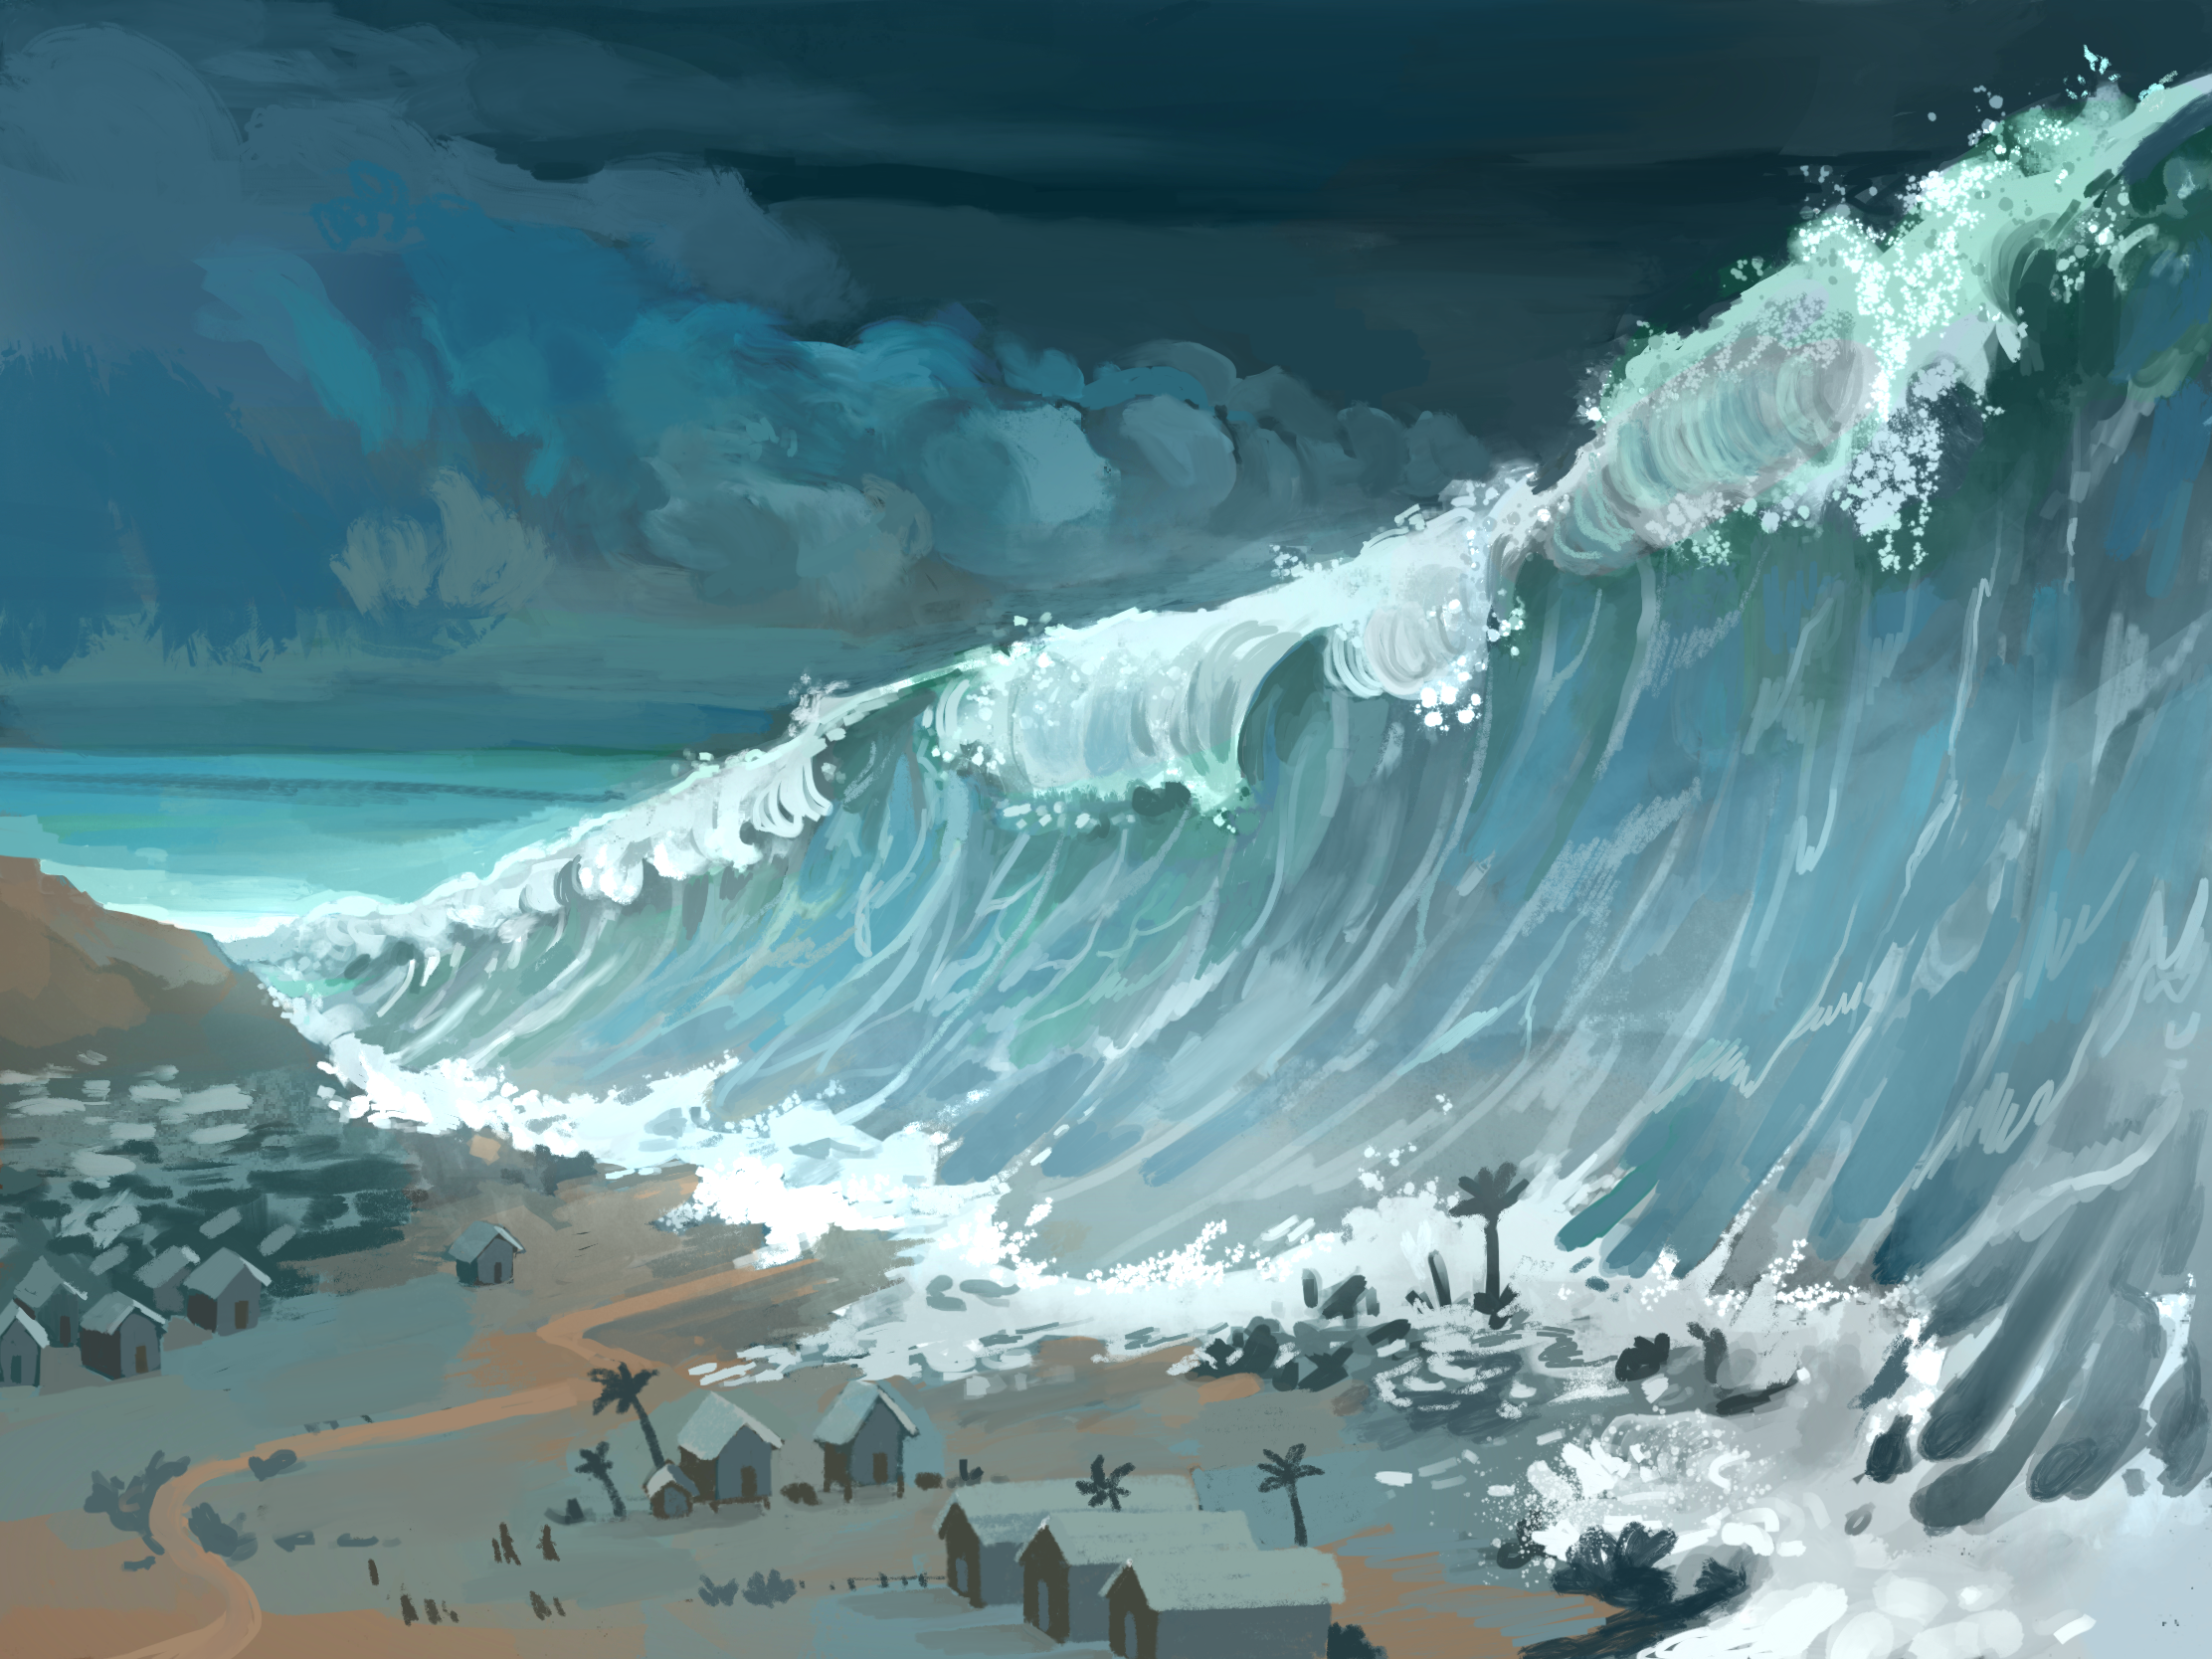 Tsunami artwork by Camille fourcade